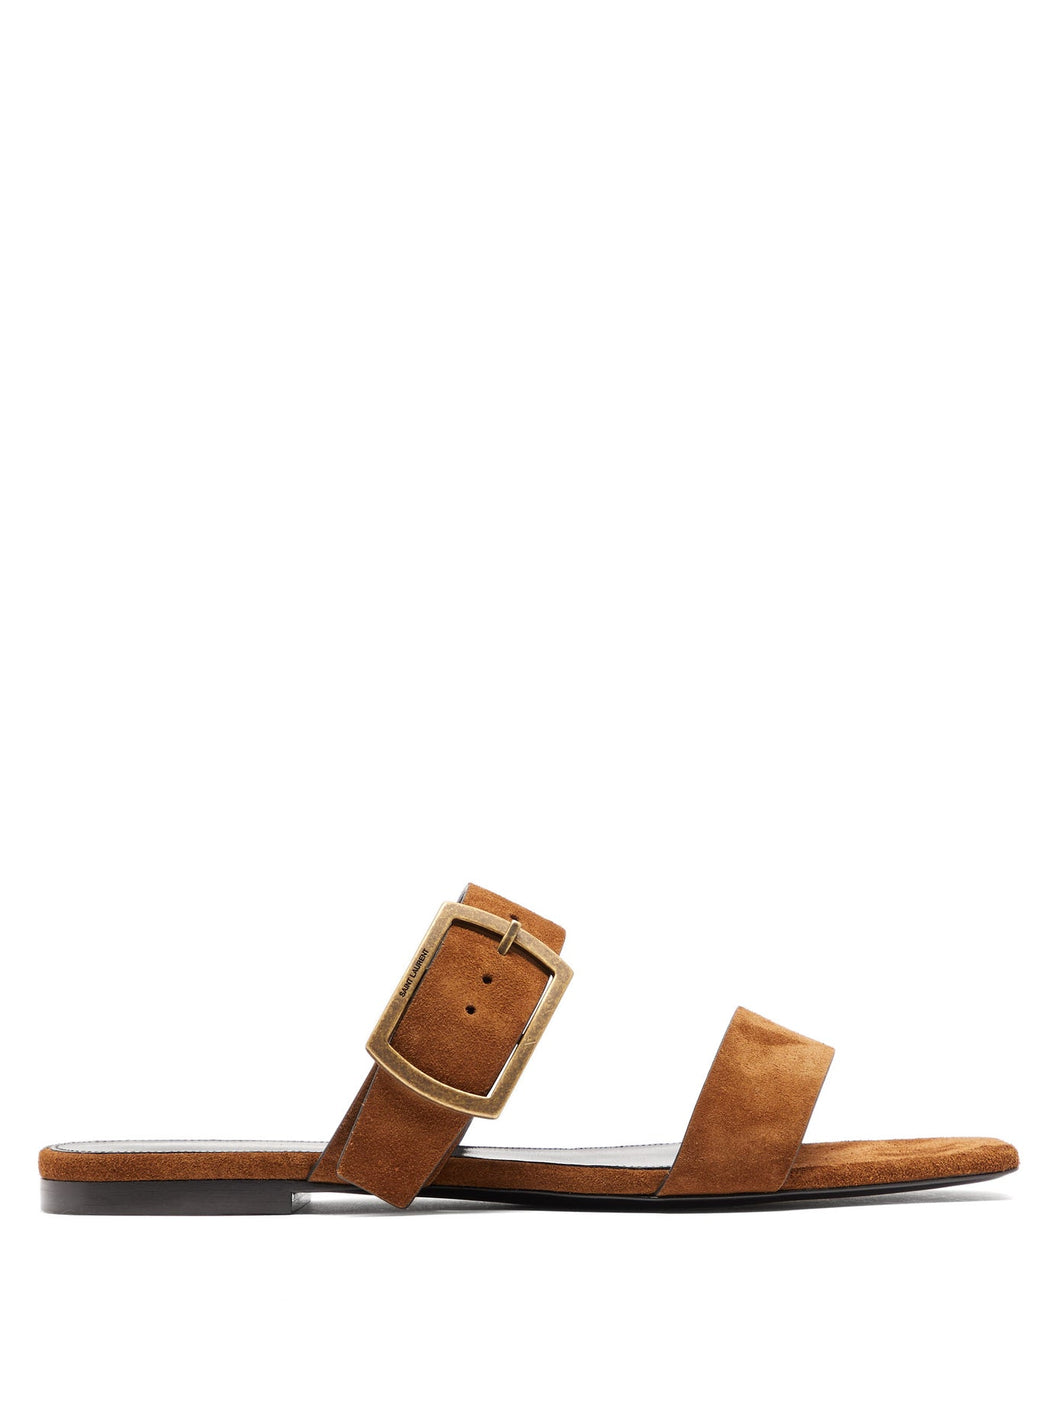 Oak buckled suede sandals